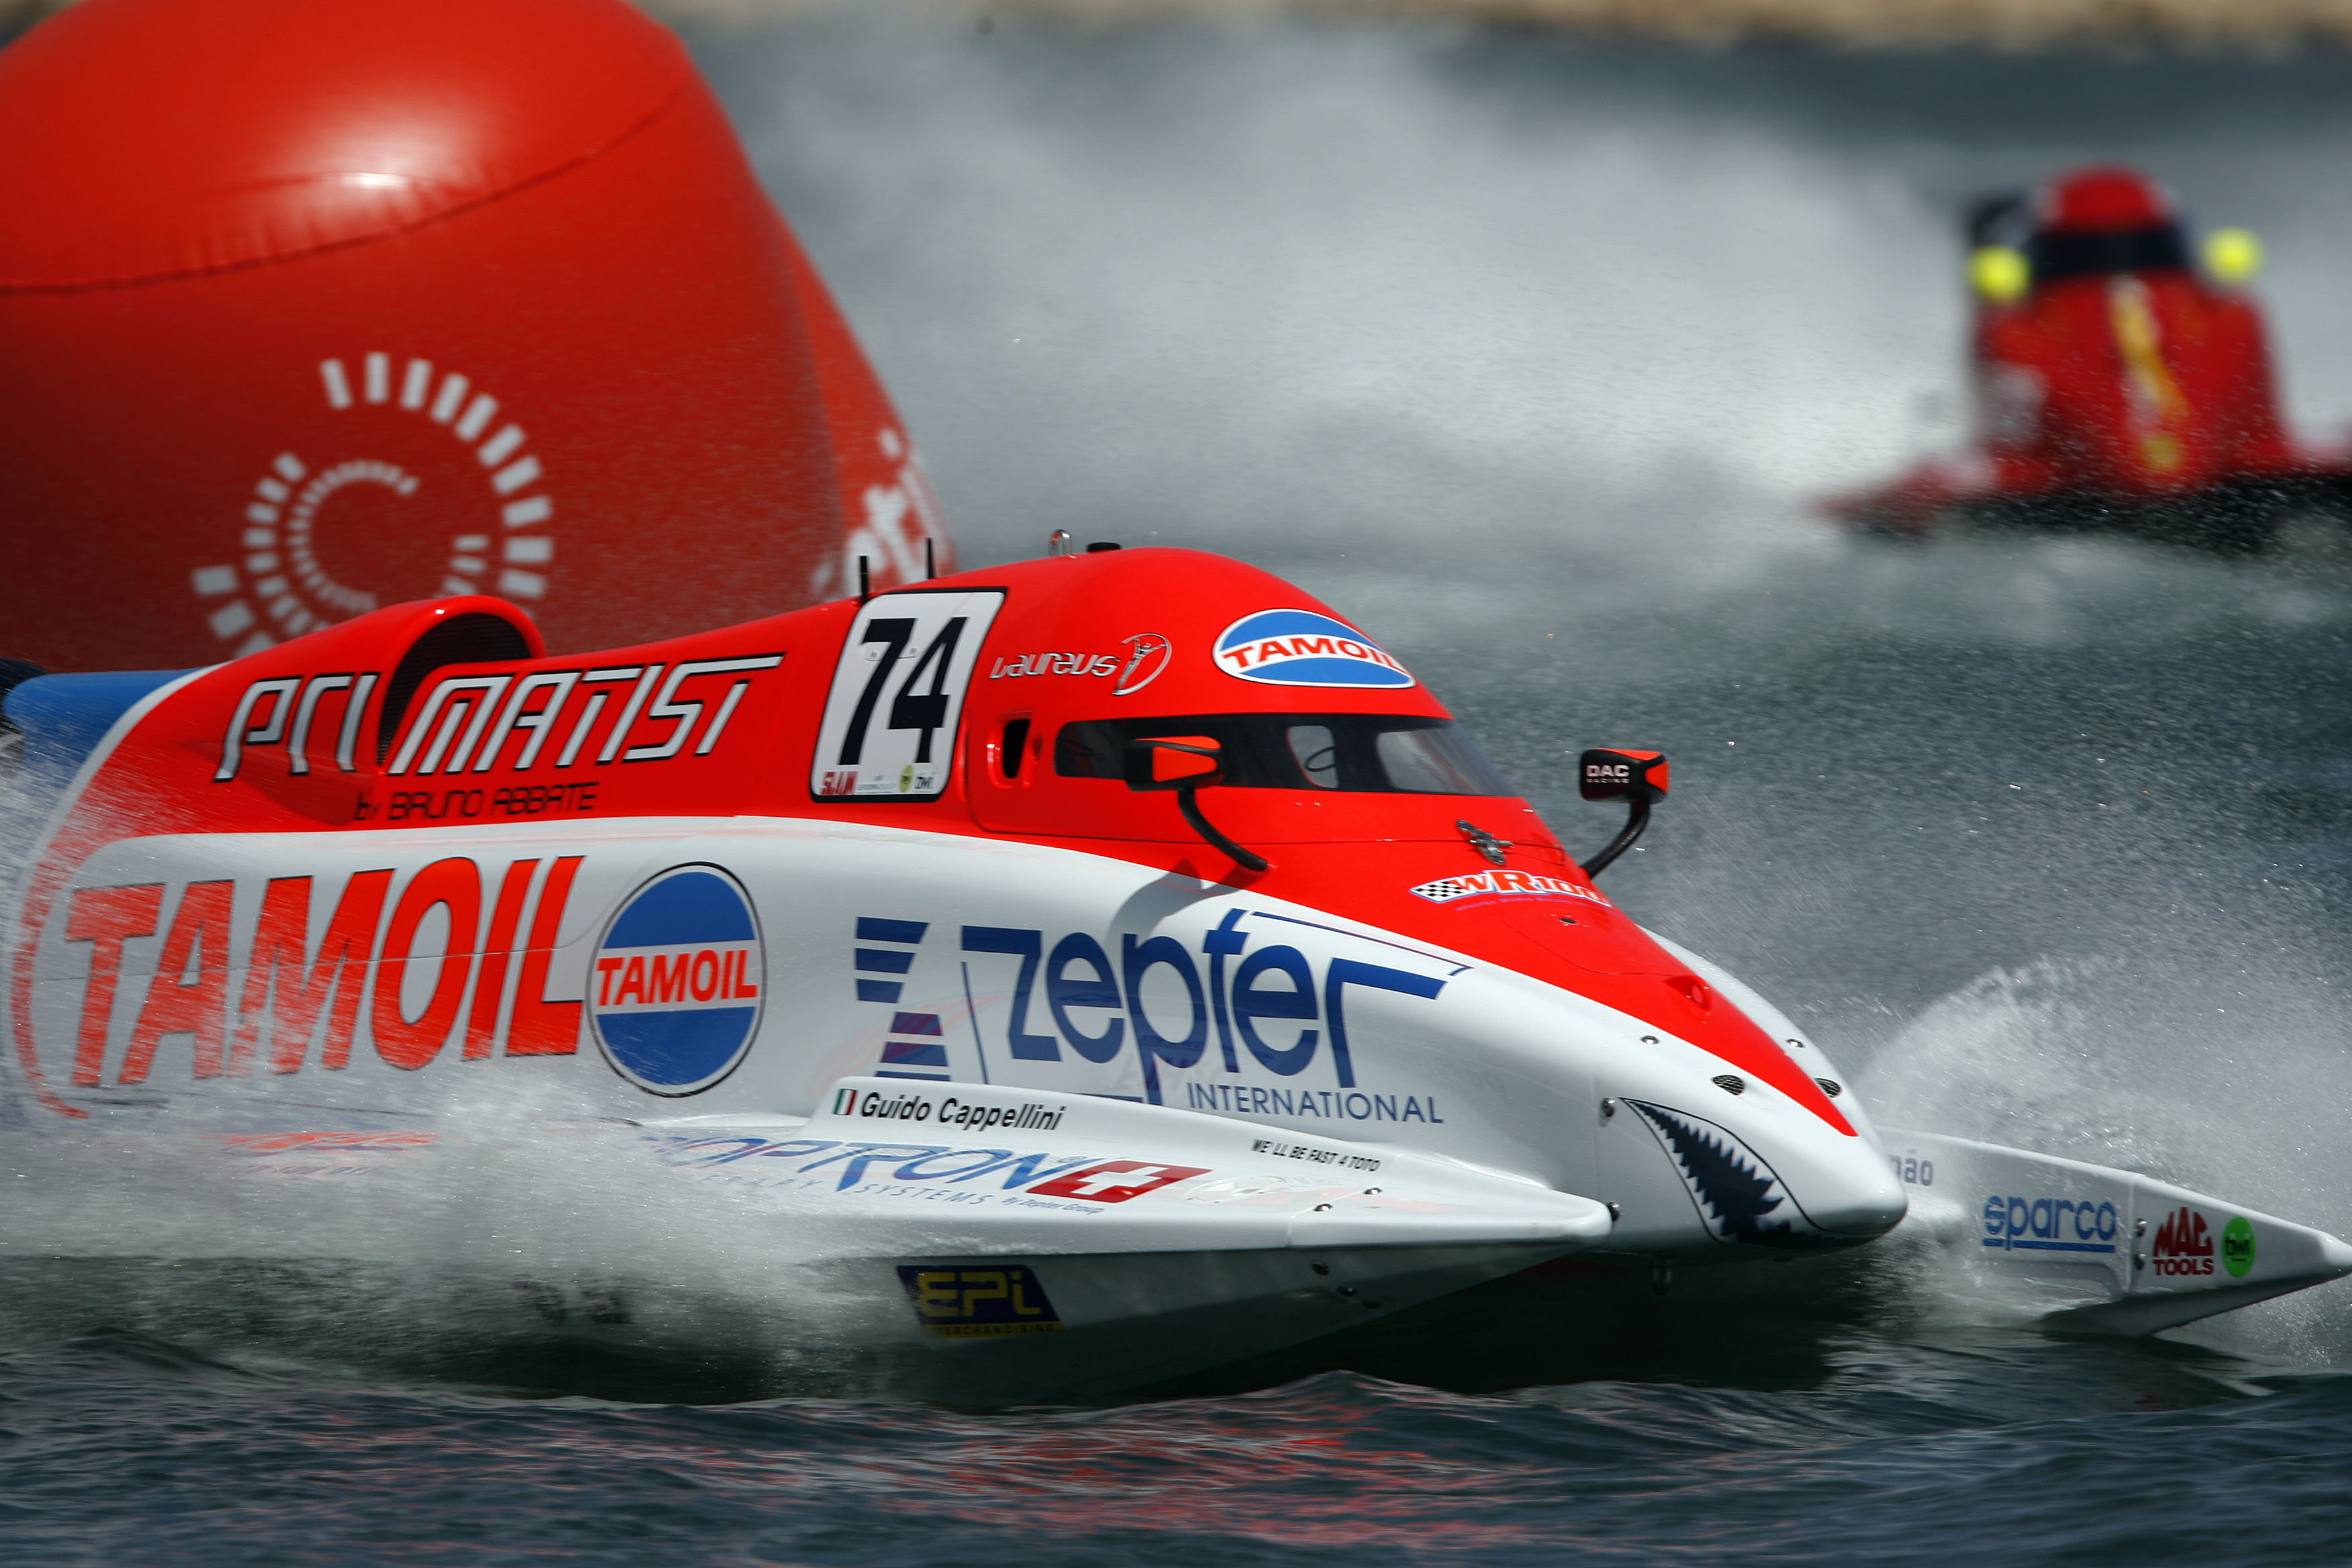 020508-GP OF PORTUGAL-PL-Guido Cappellini of Italy F1 powerboat team pictured in action at the UIM F1 Powerboat Grand prix of Portugal, Portimao, Portugal, the 2nd leg of the championship series. Picture by Paul Lakatos/Idea Marketing.